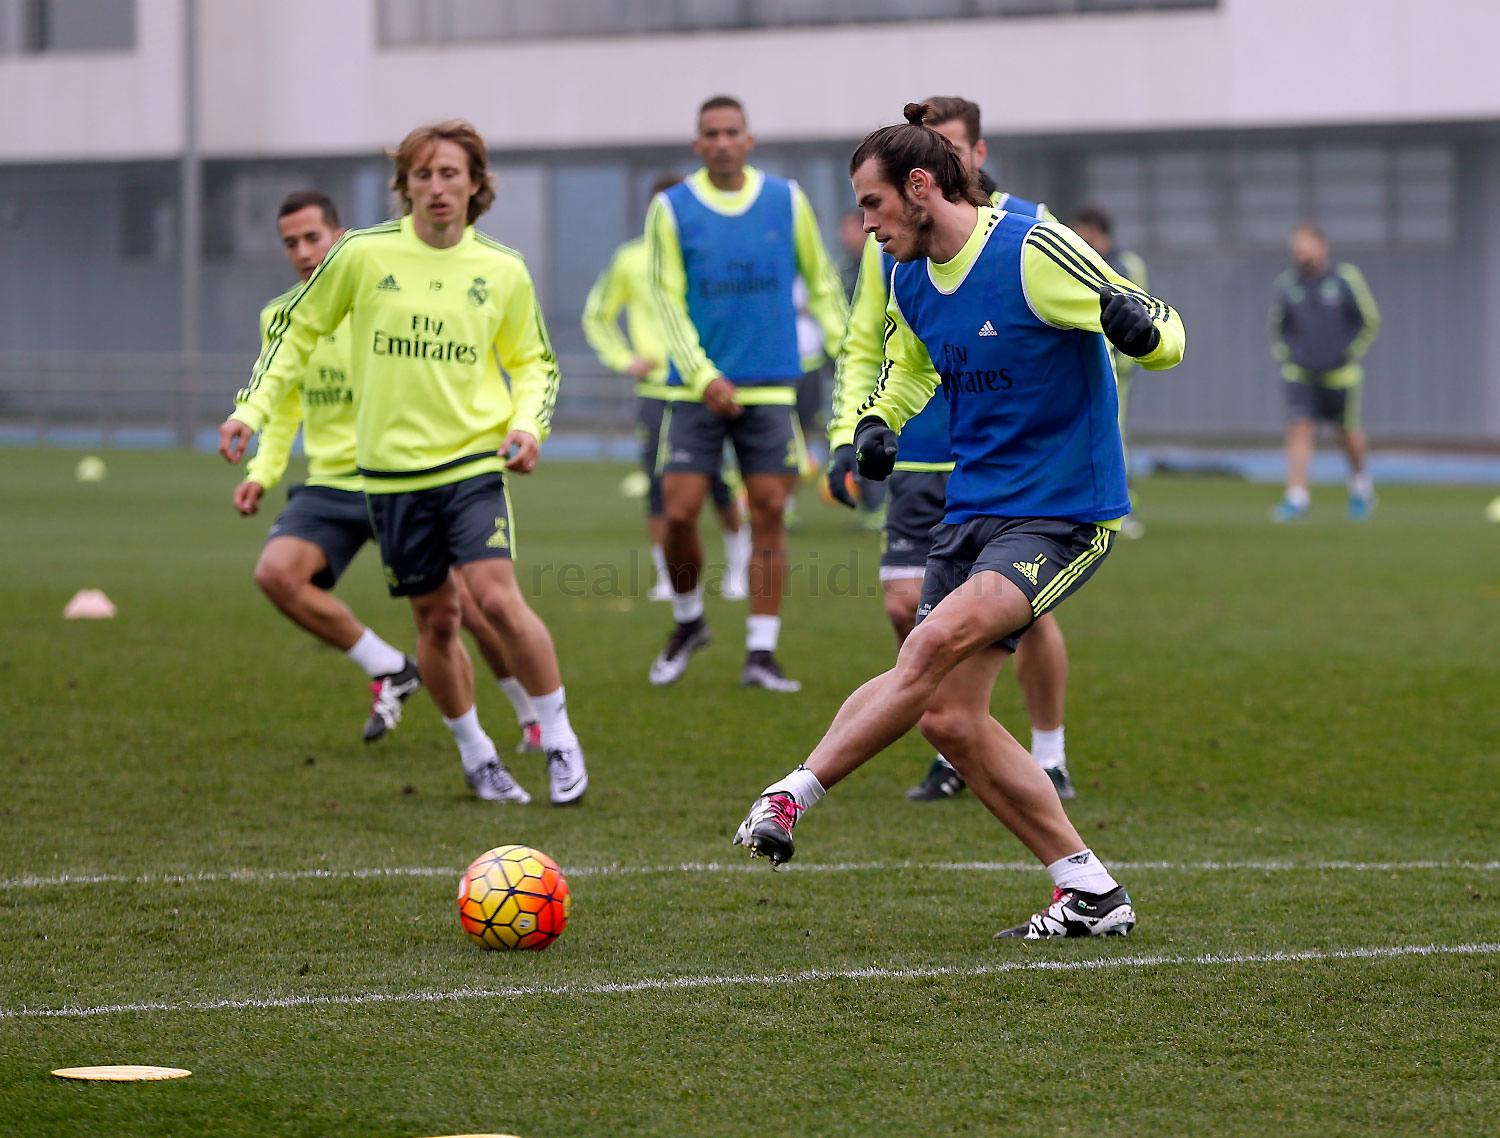 Real Madrid - Entrenamiento del Real Madrid - 29-12-2015